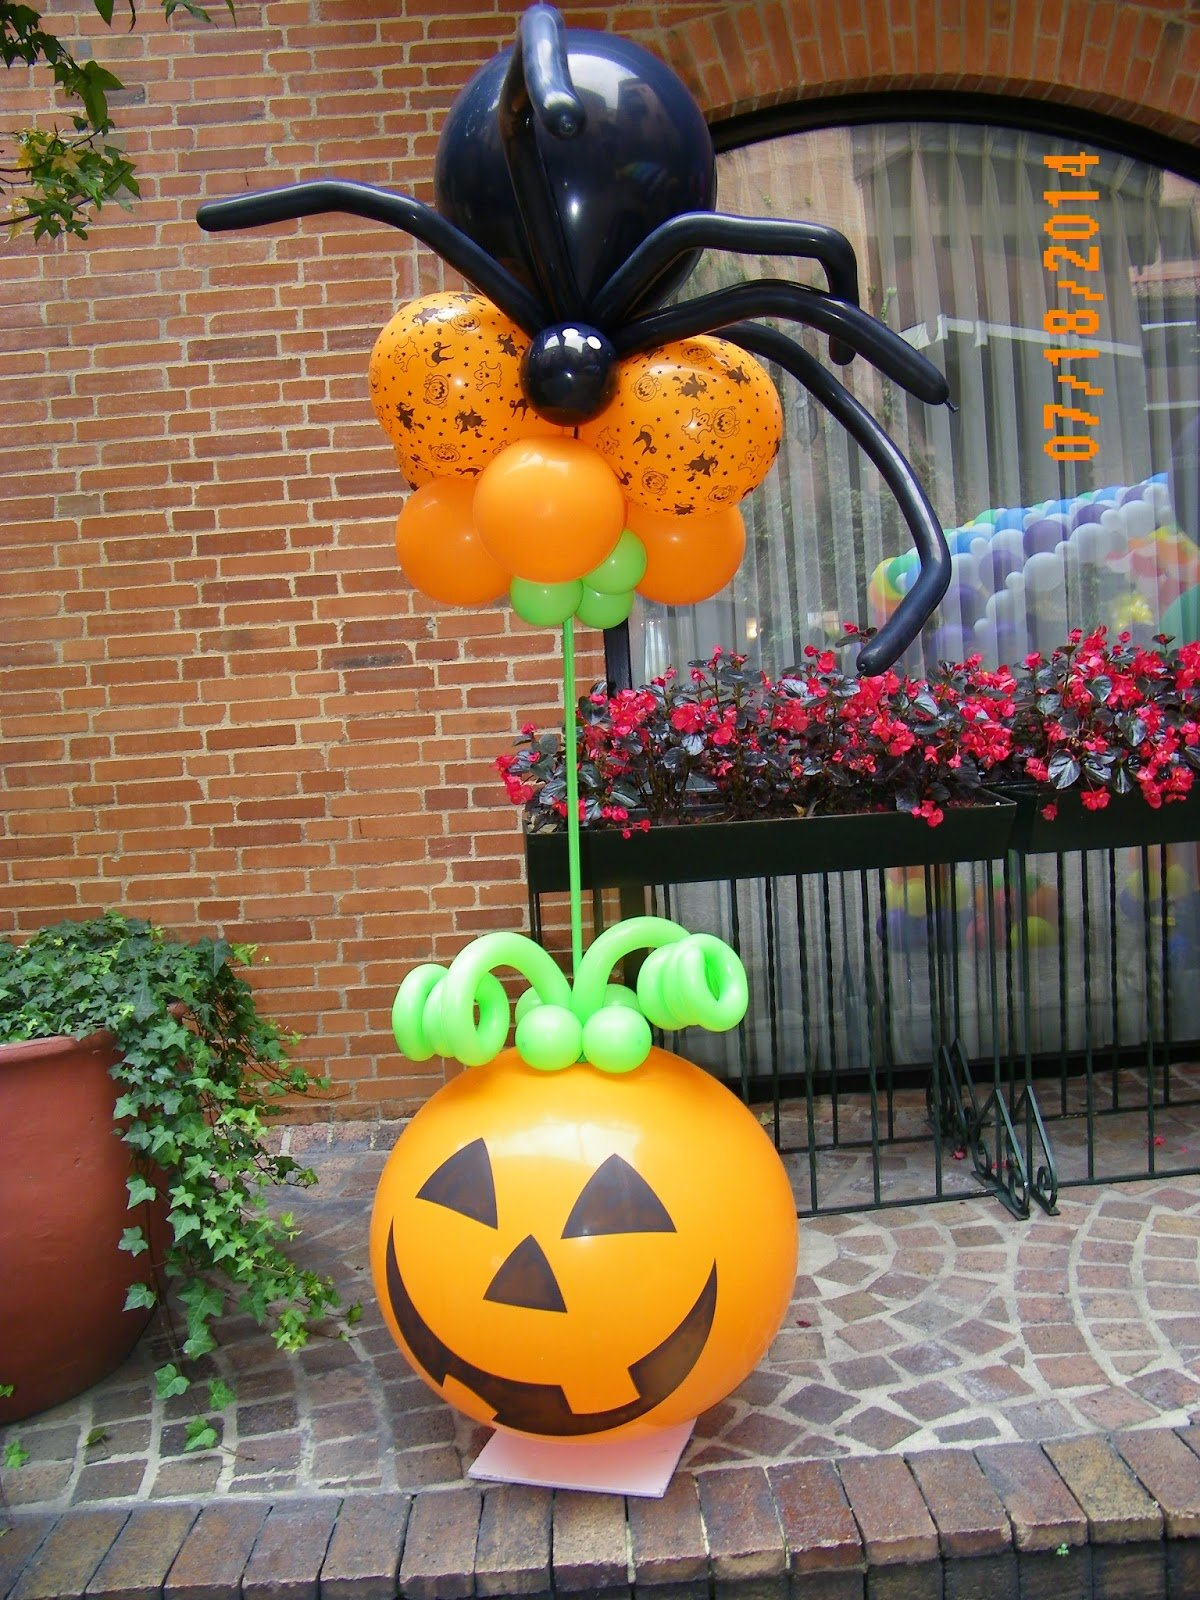 15 ideas sencillas para decorar con globos en halloween for Decoracion fiesta halloween